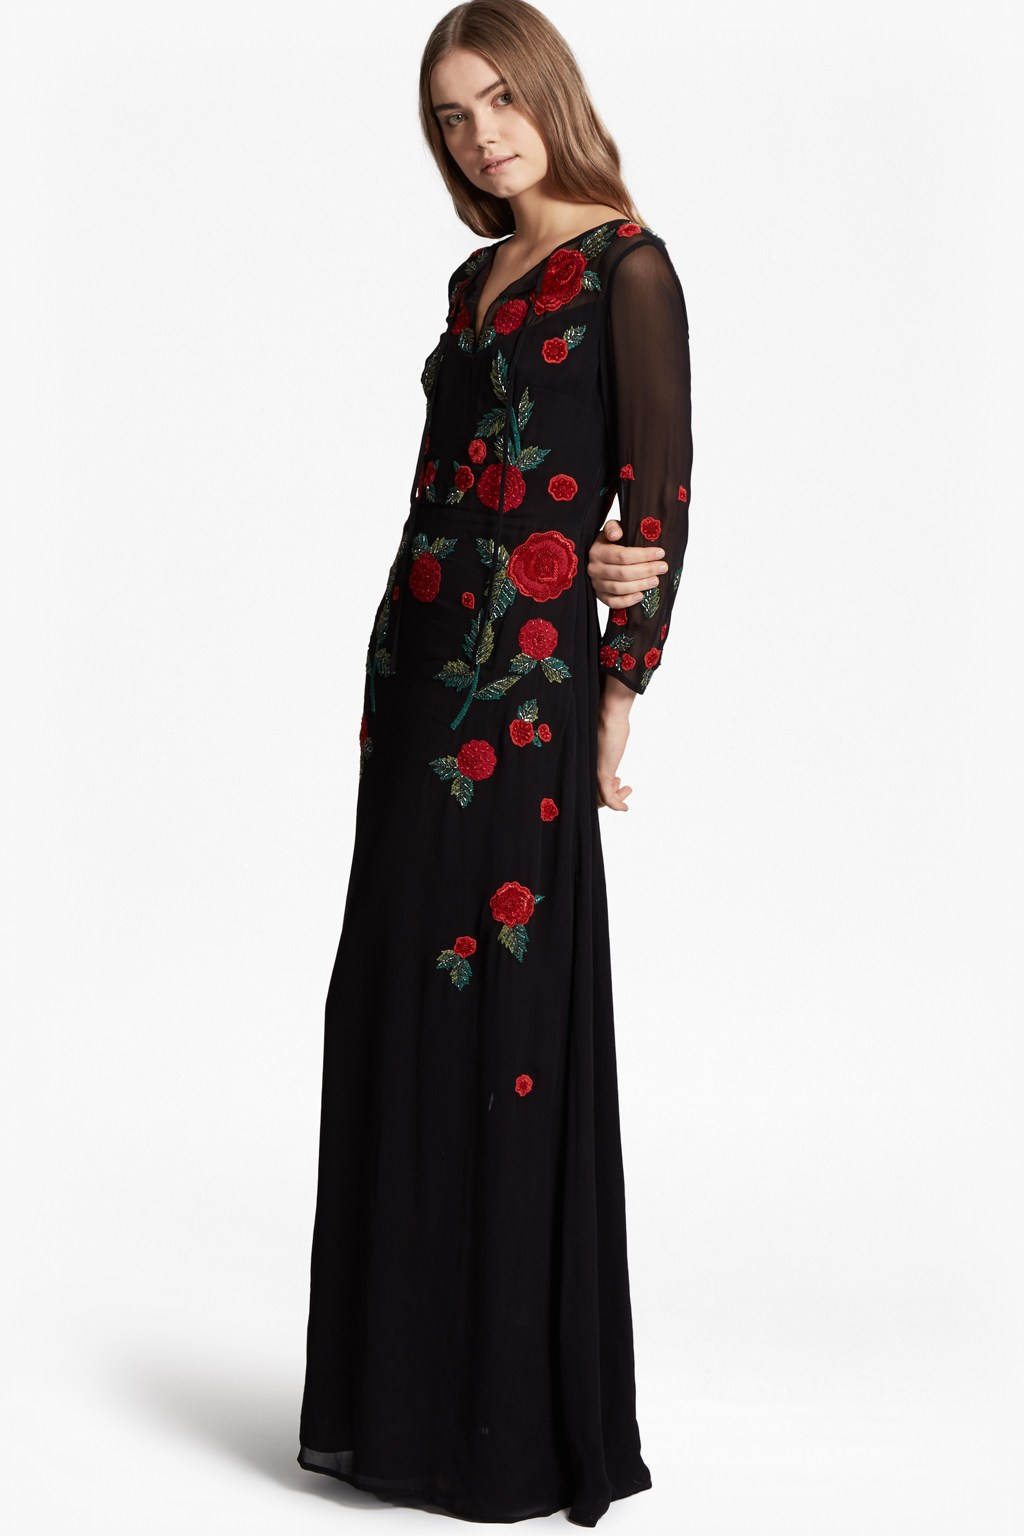 Amore sparkle embroidered maxi dress collections